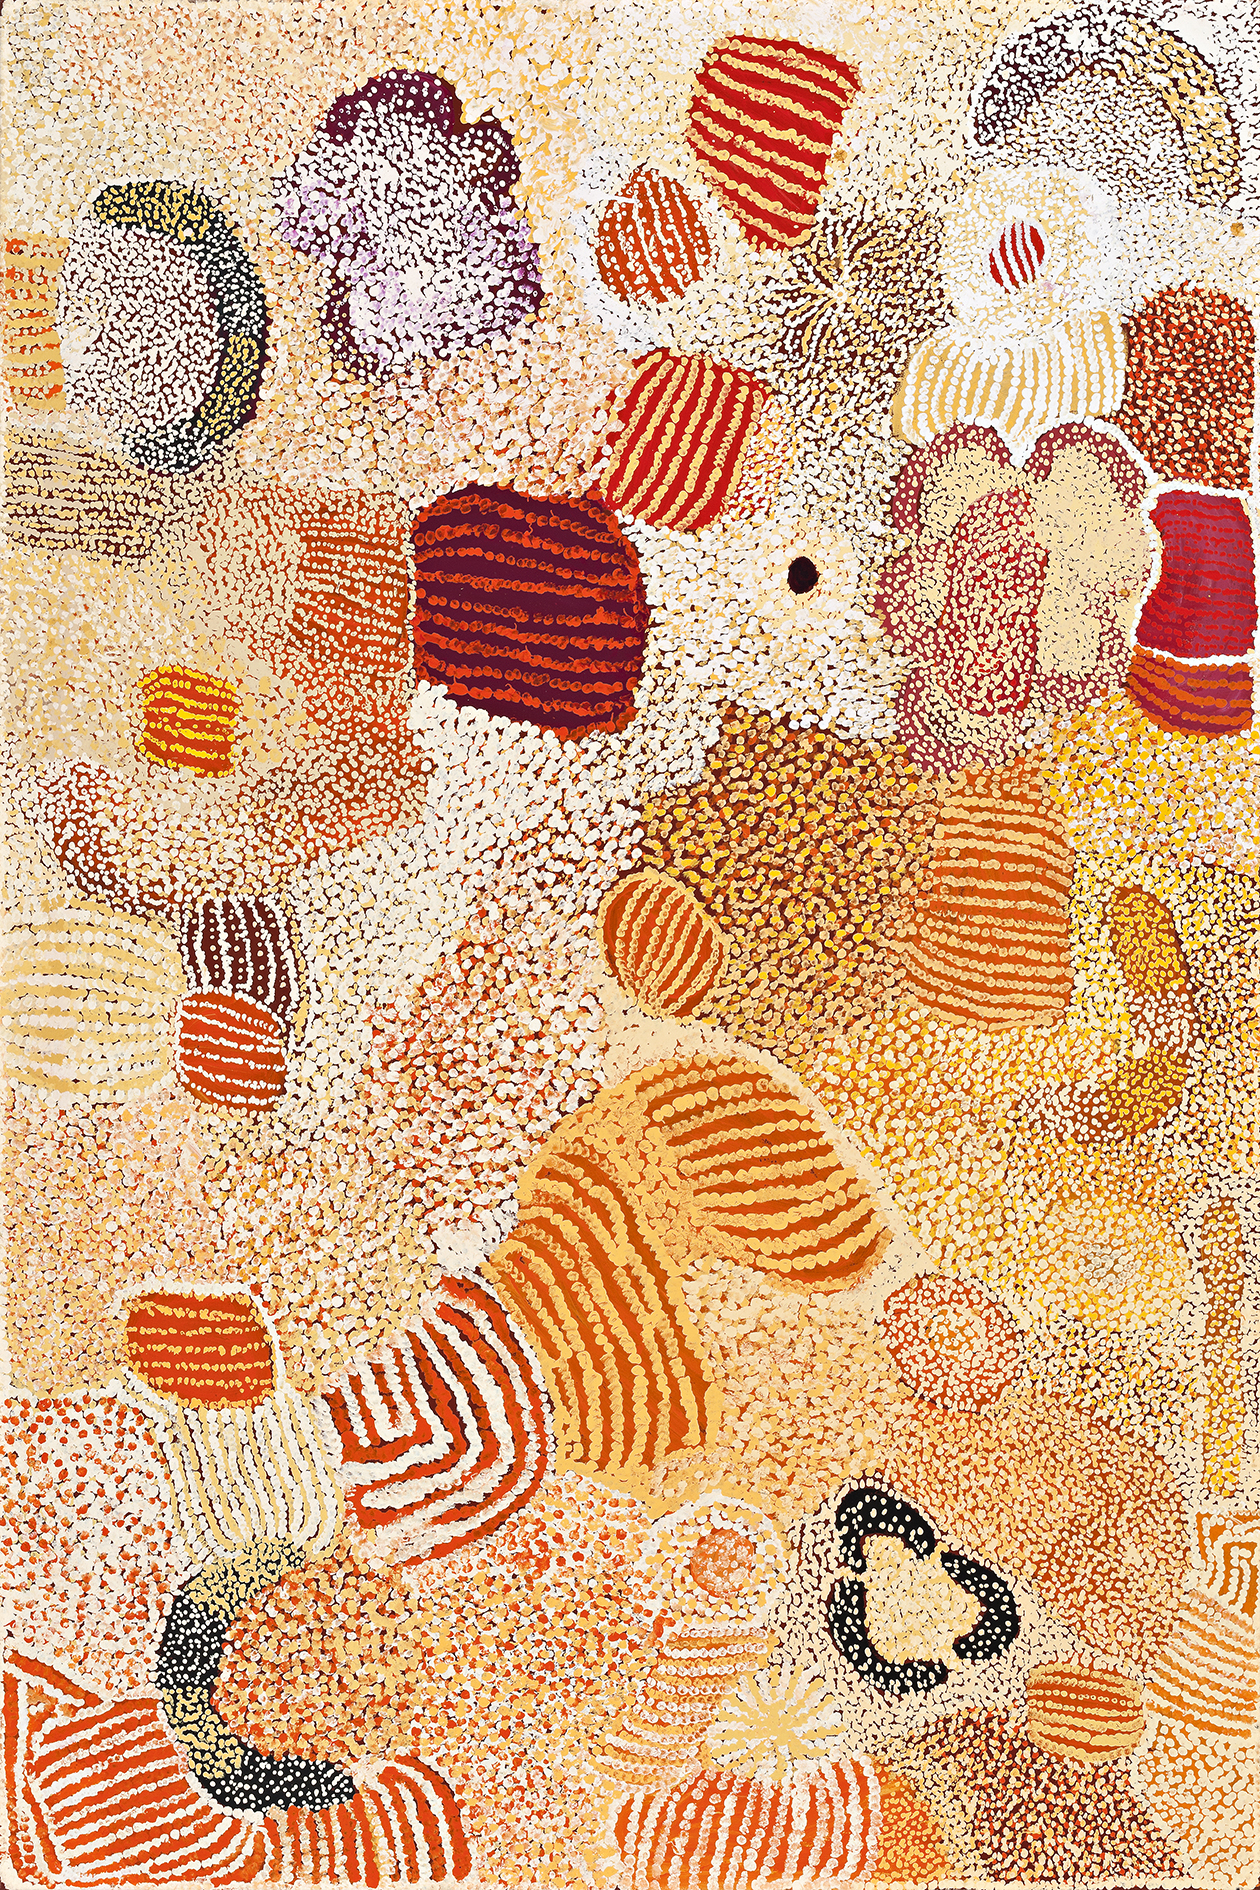 Elizabeth Nyumi Nungarrayi,  Parwalla , 2001 From the Laverty Collection, sold at Deutscher and Hackett for $37,820 IBP